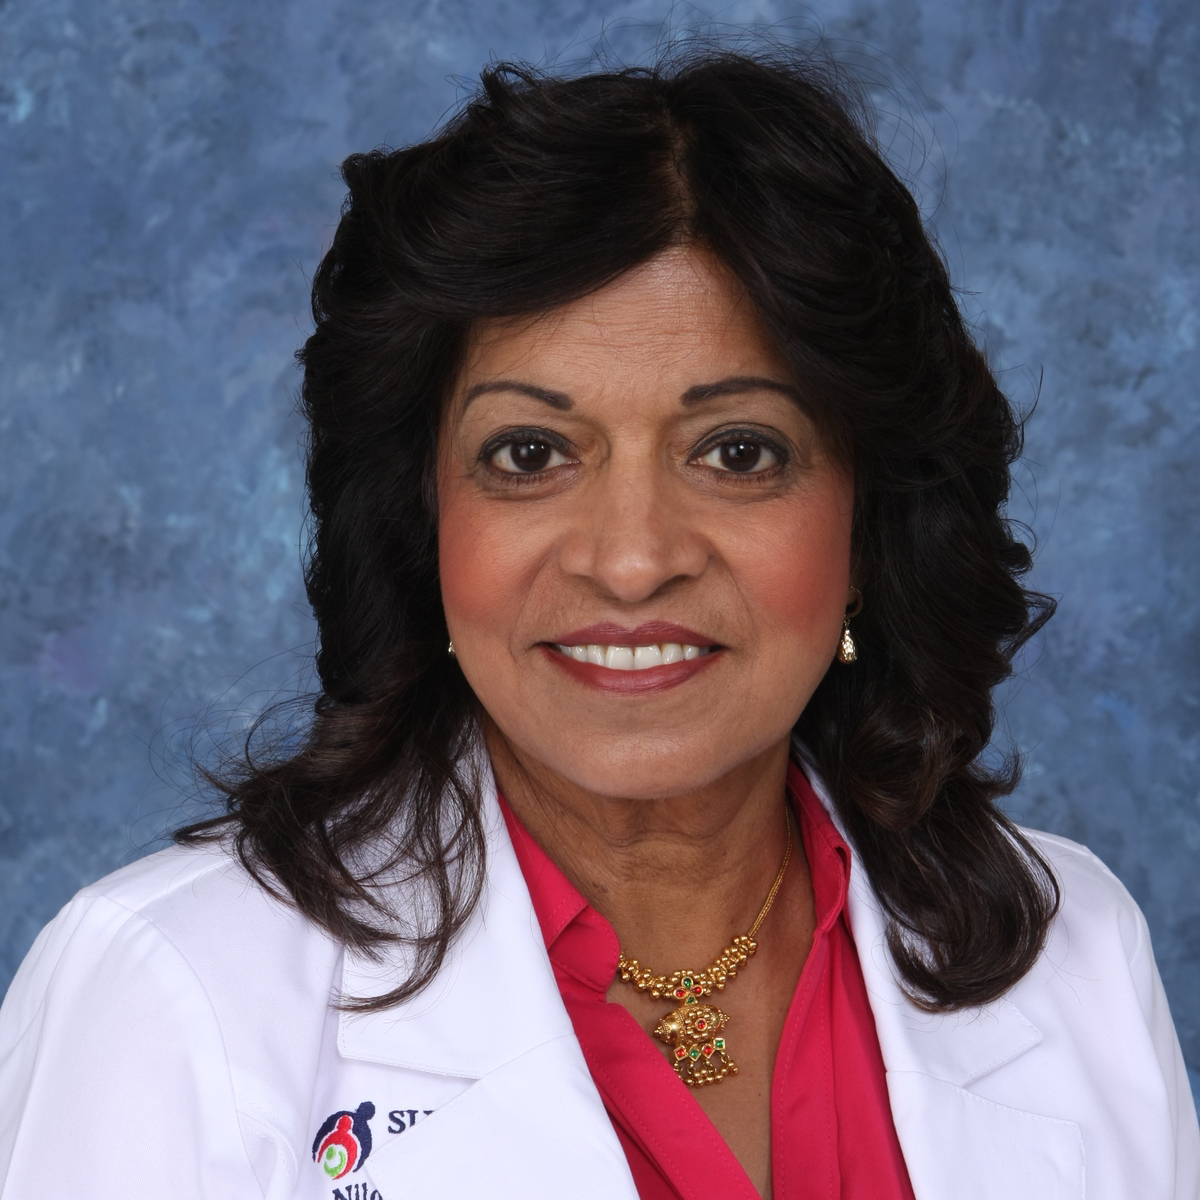 Dr. Niloufer Kero, MD